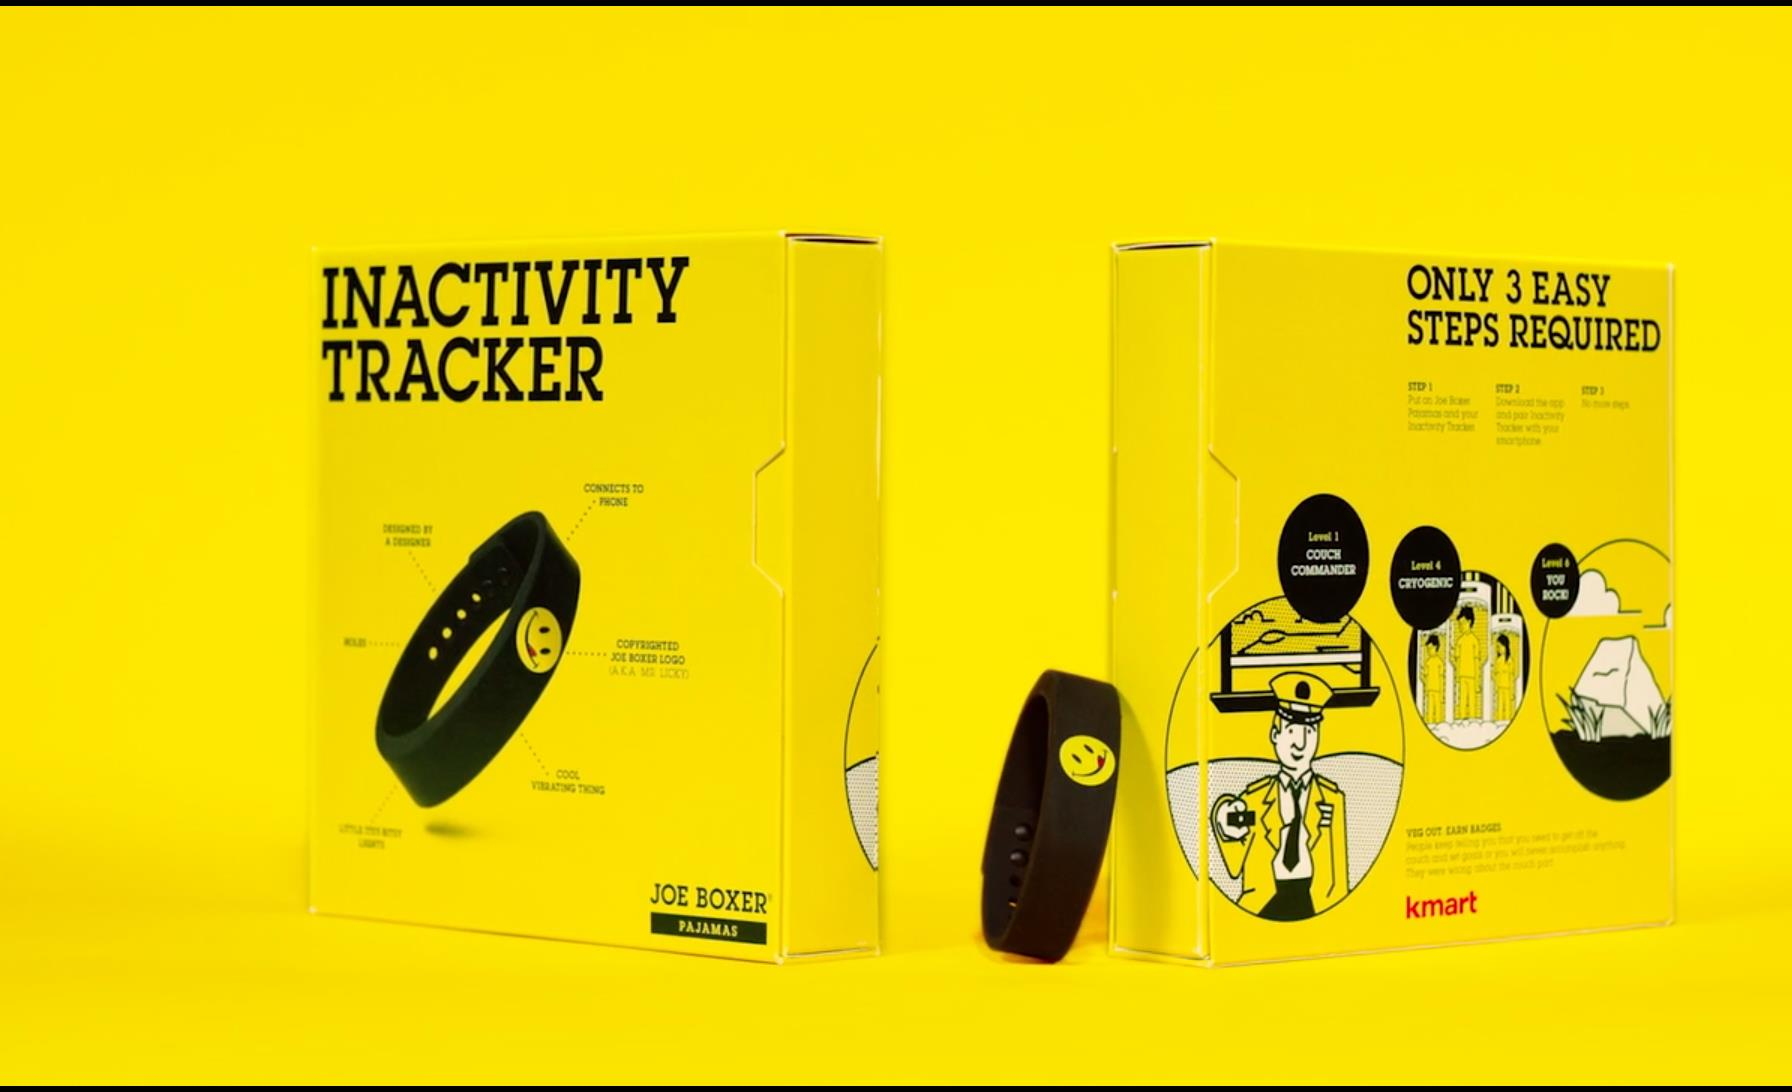 Joe Boxer Inactivity Tracker Case Study